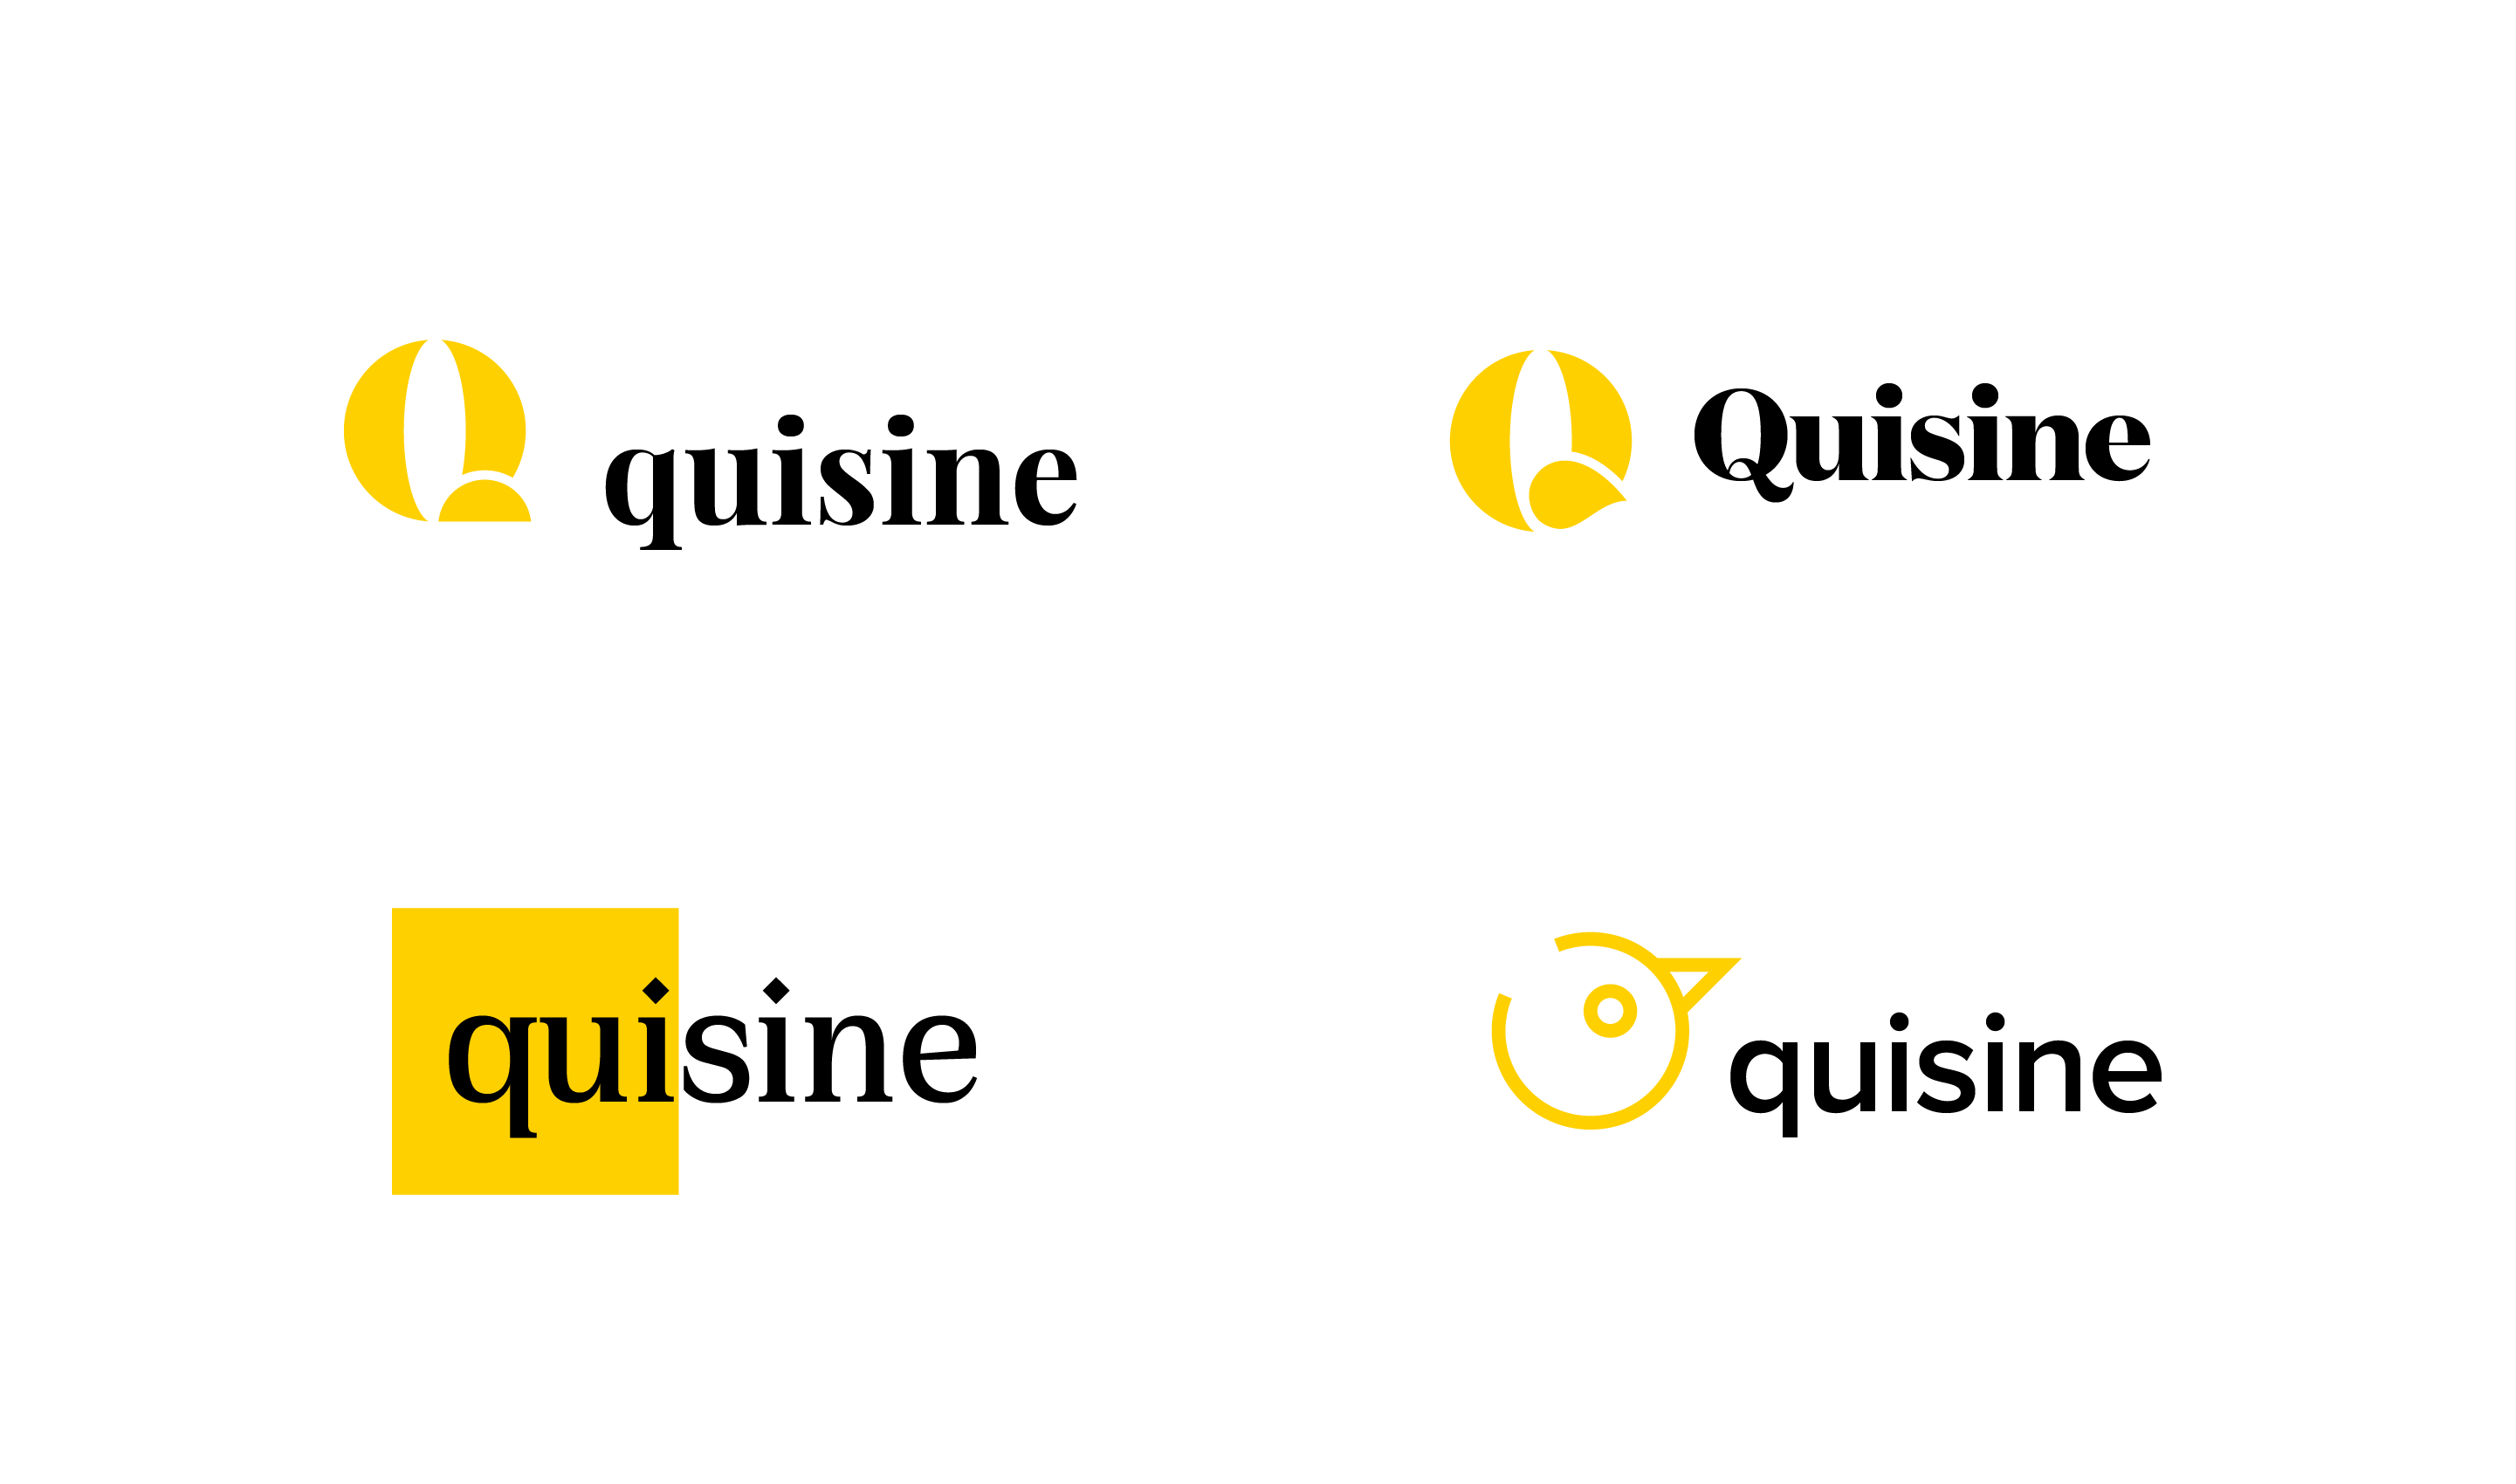 quisine logo design iterations